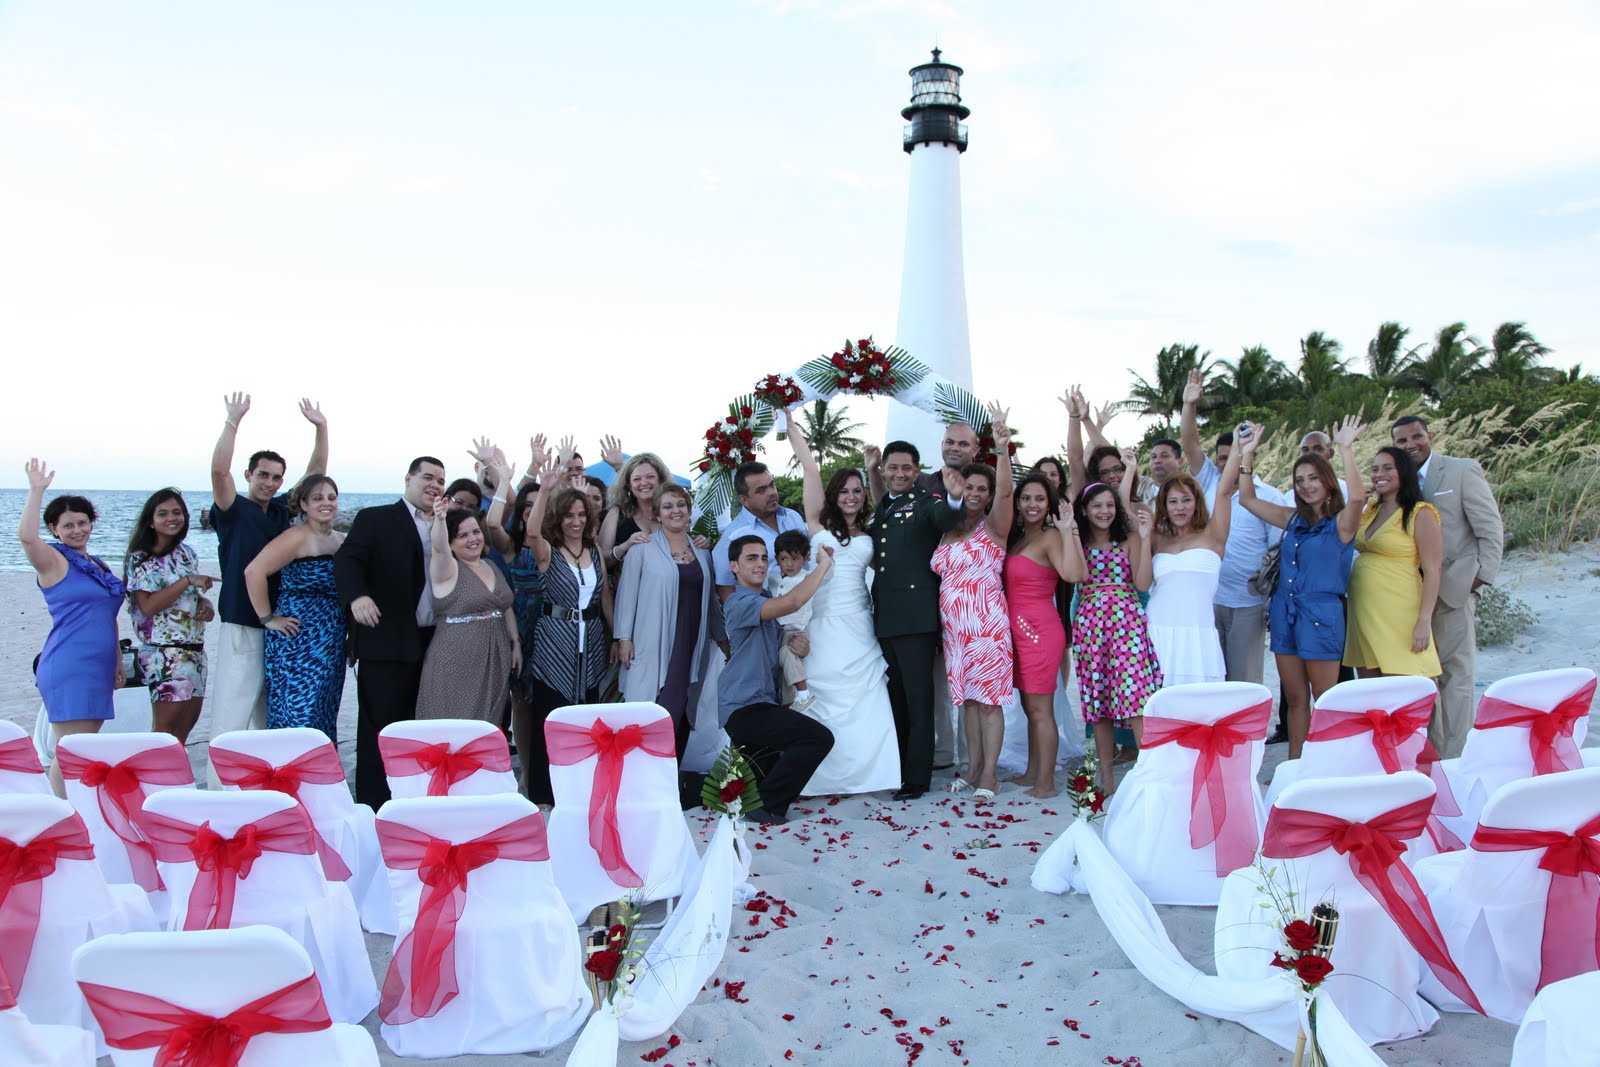 Renewing Your Vows Venue West Orange: Elegant Beach Weddings: Vow Renewal: Veronica And Hermin's